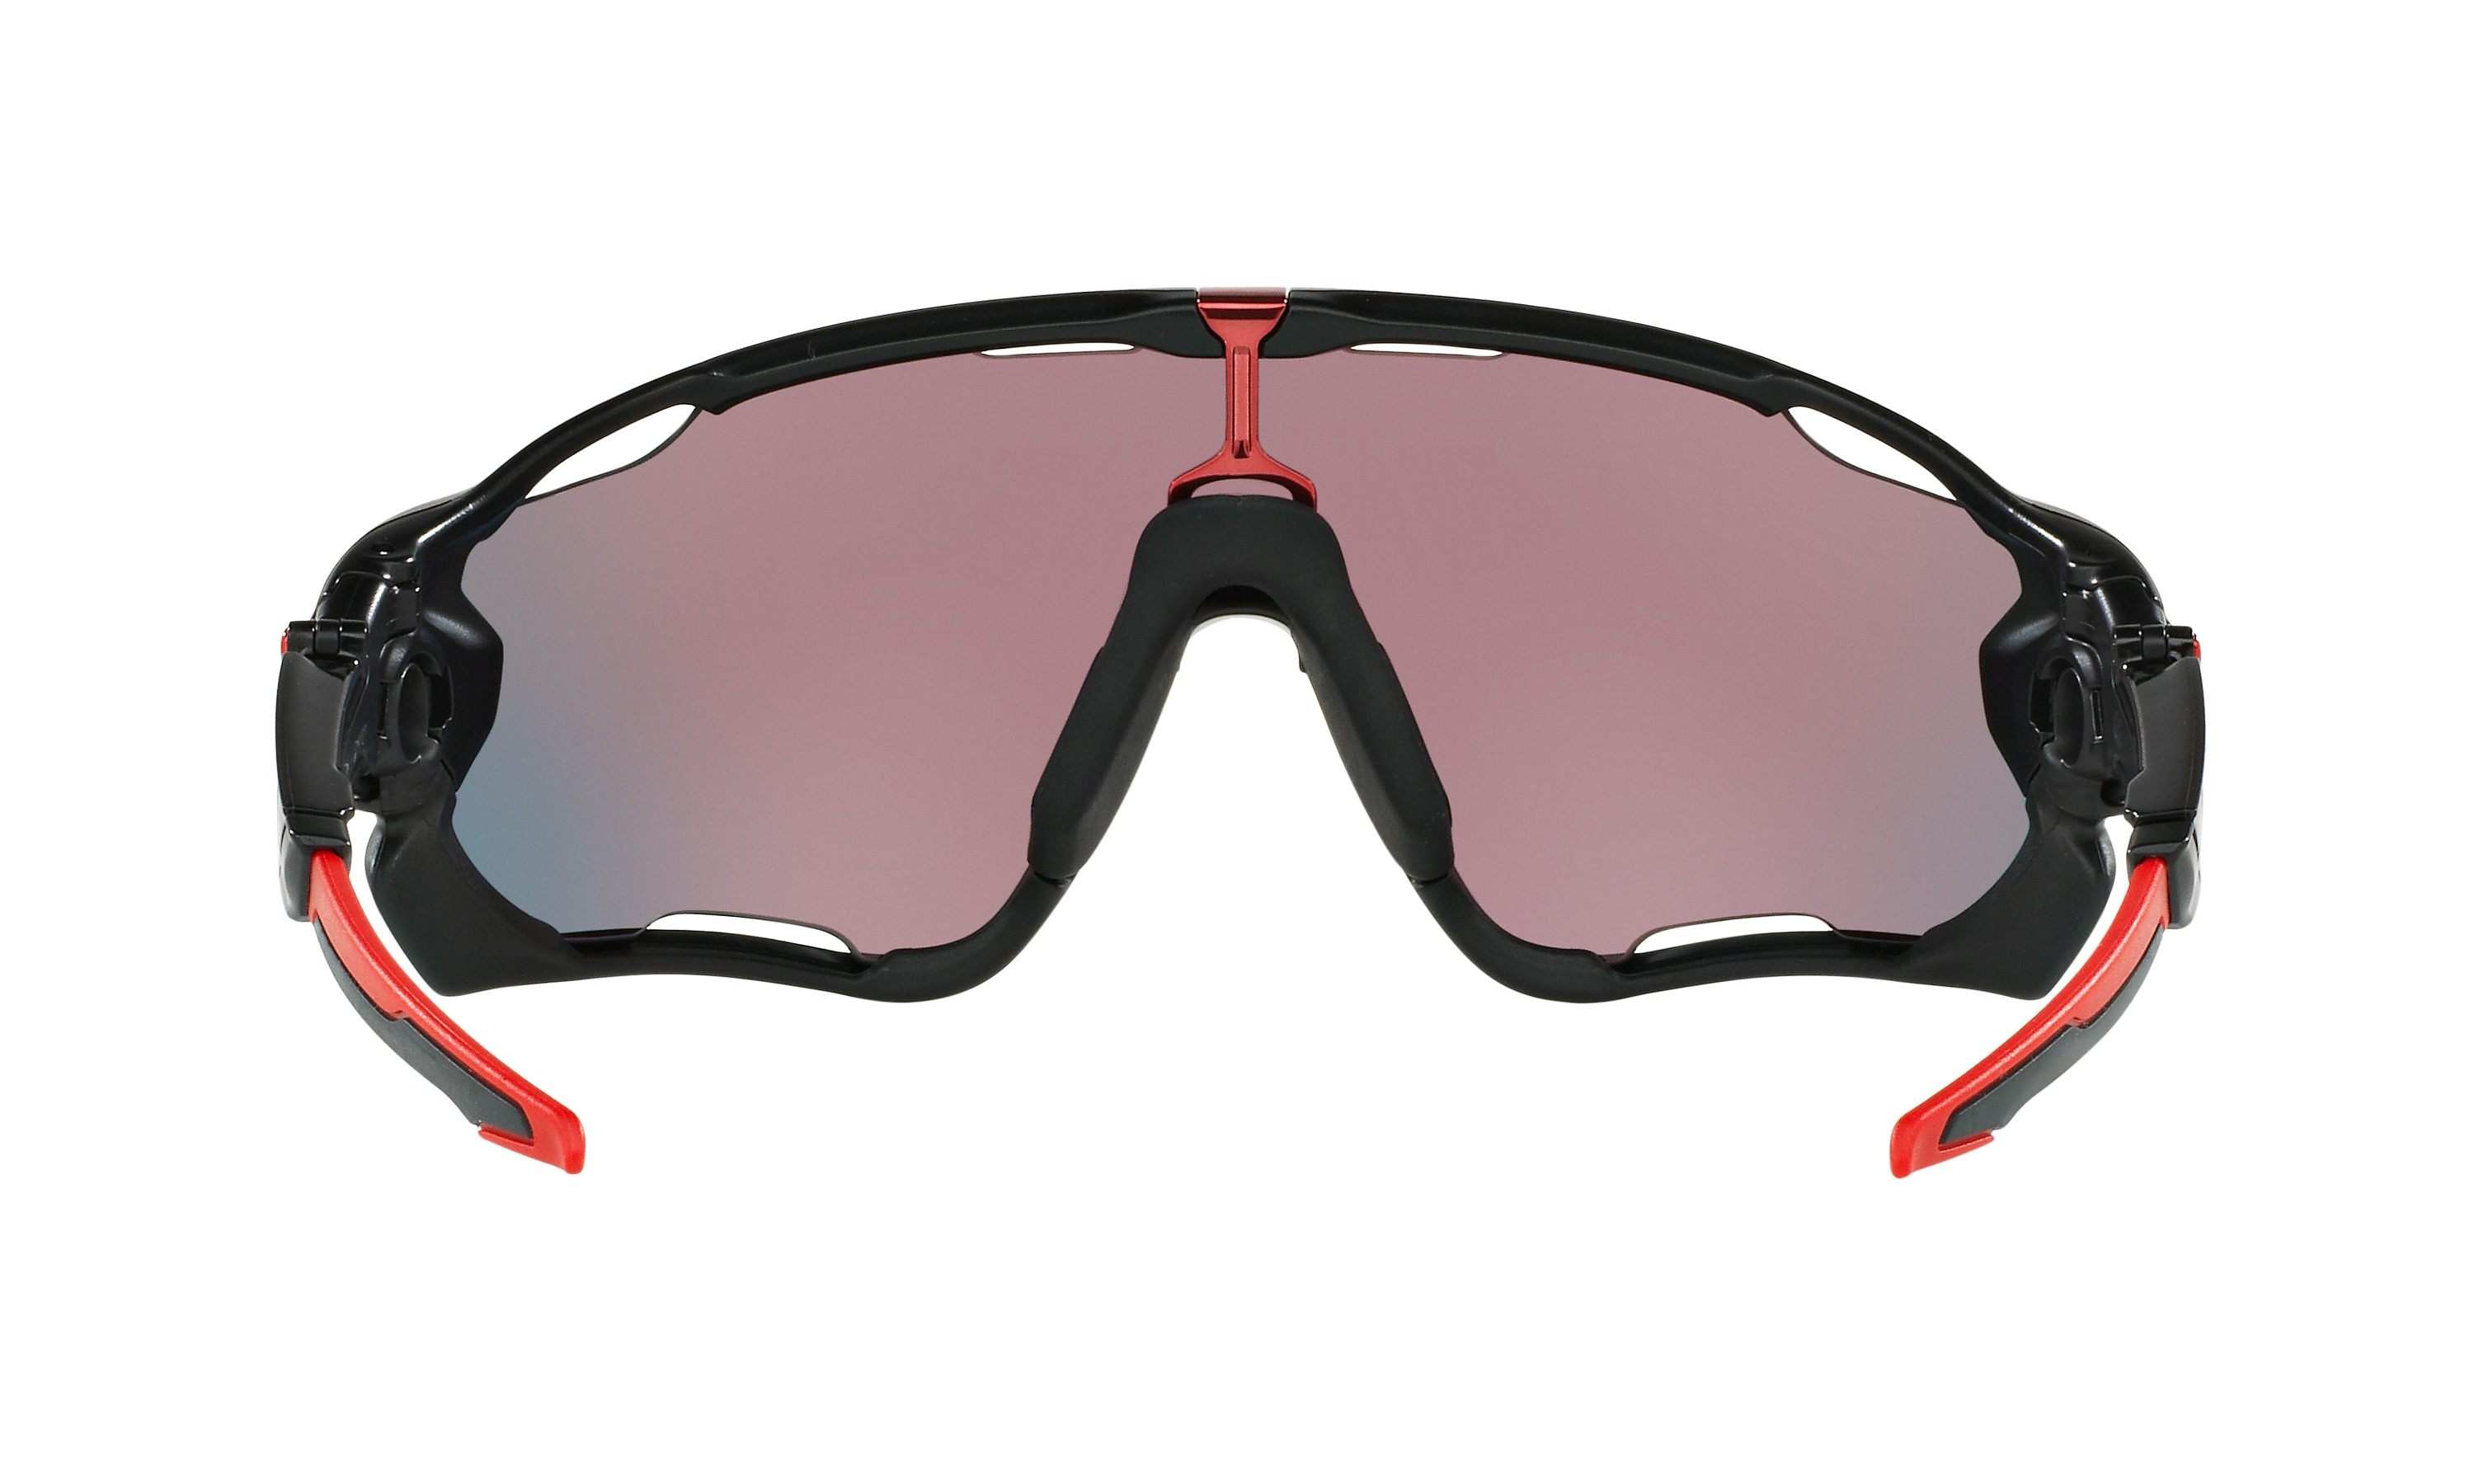 14a39a857c Oakley Jawbreaker Matte Black Prizm Road Sunglasses Review ...